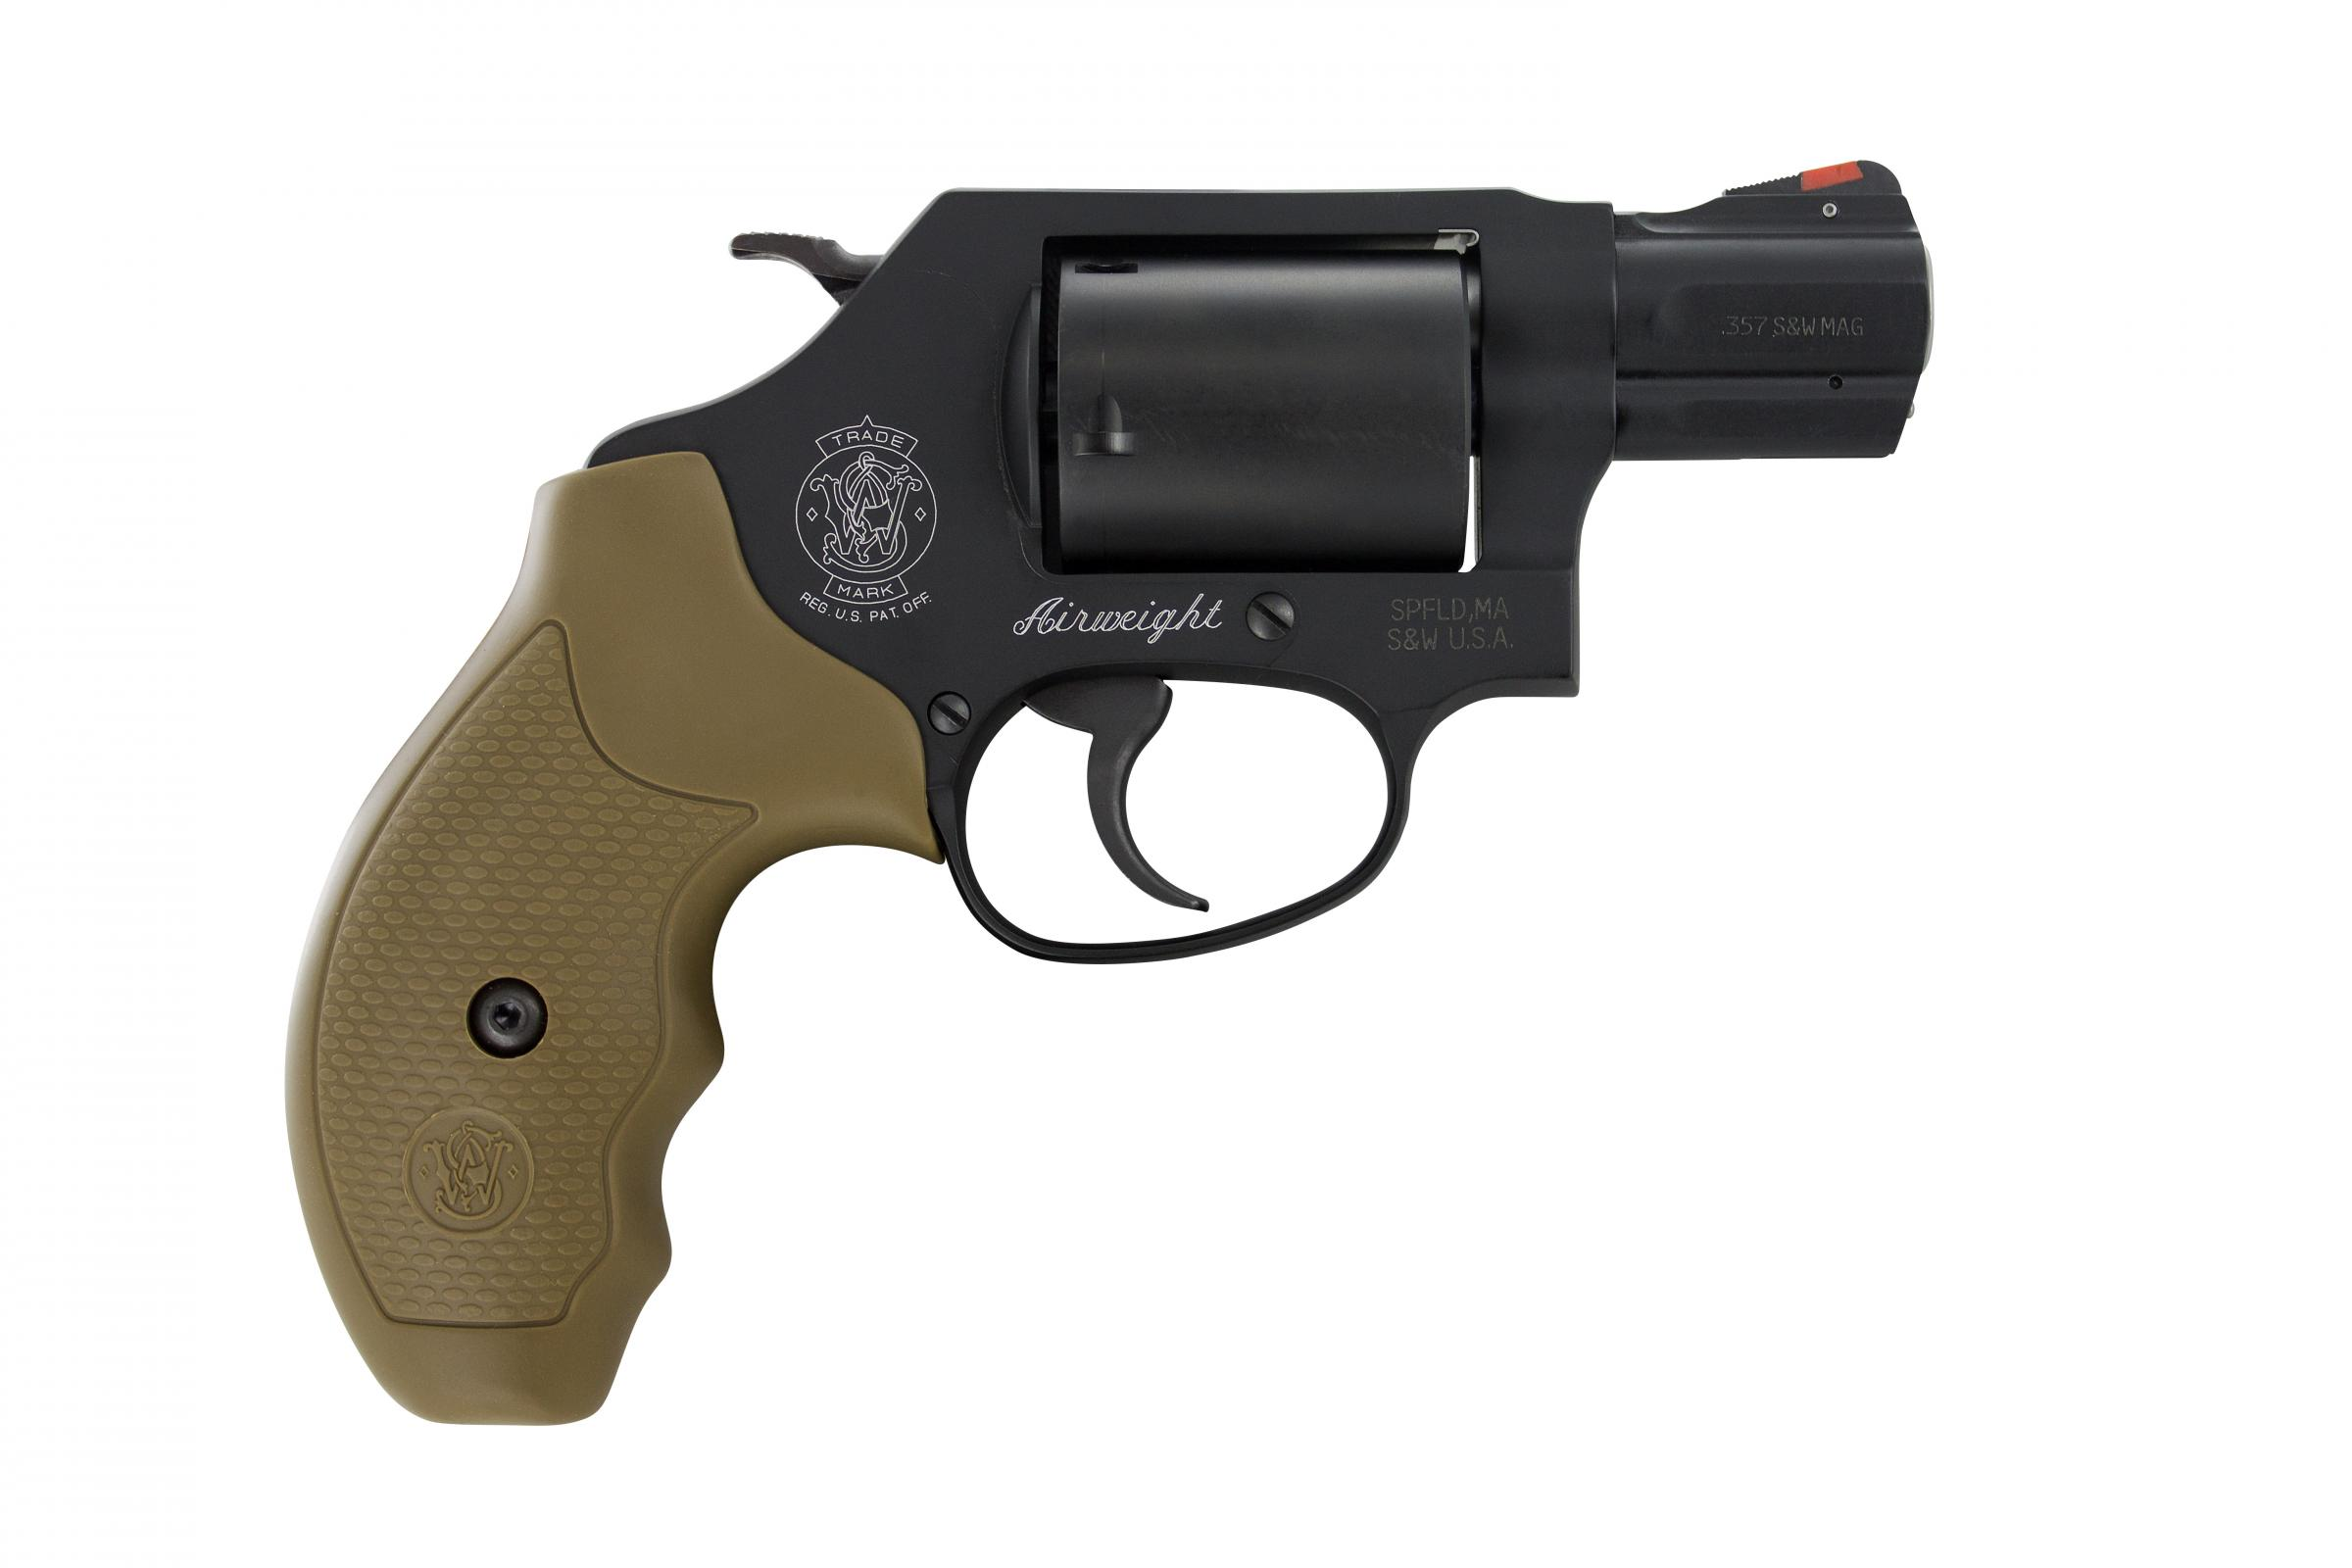 Smith and Wesson 360 357 Magnum | 38 Special